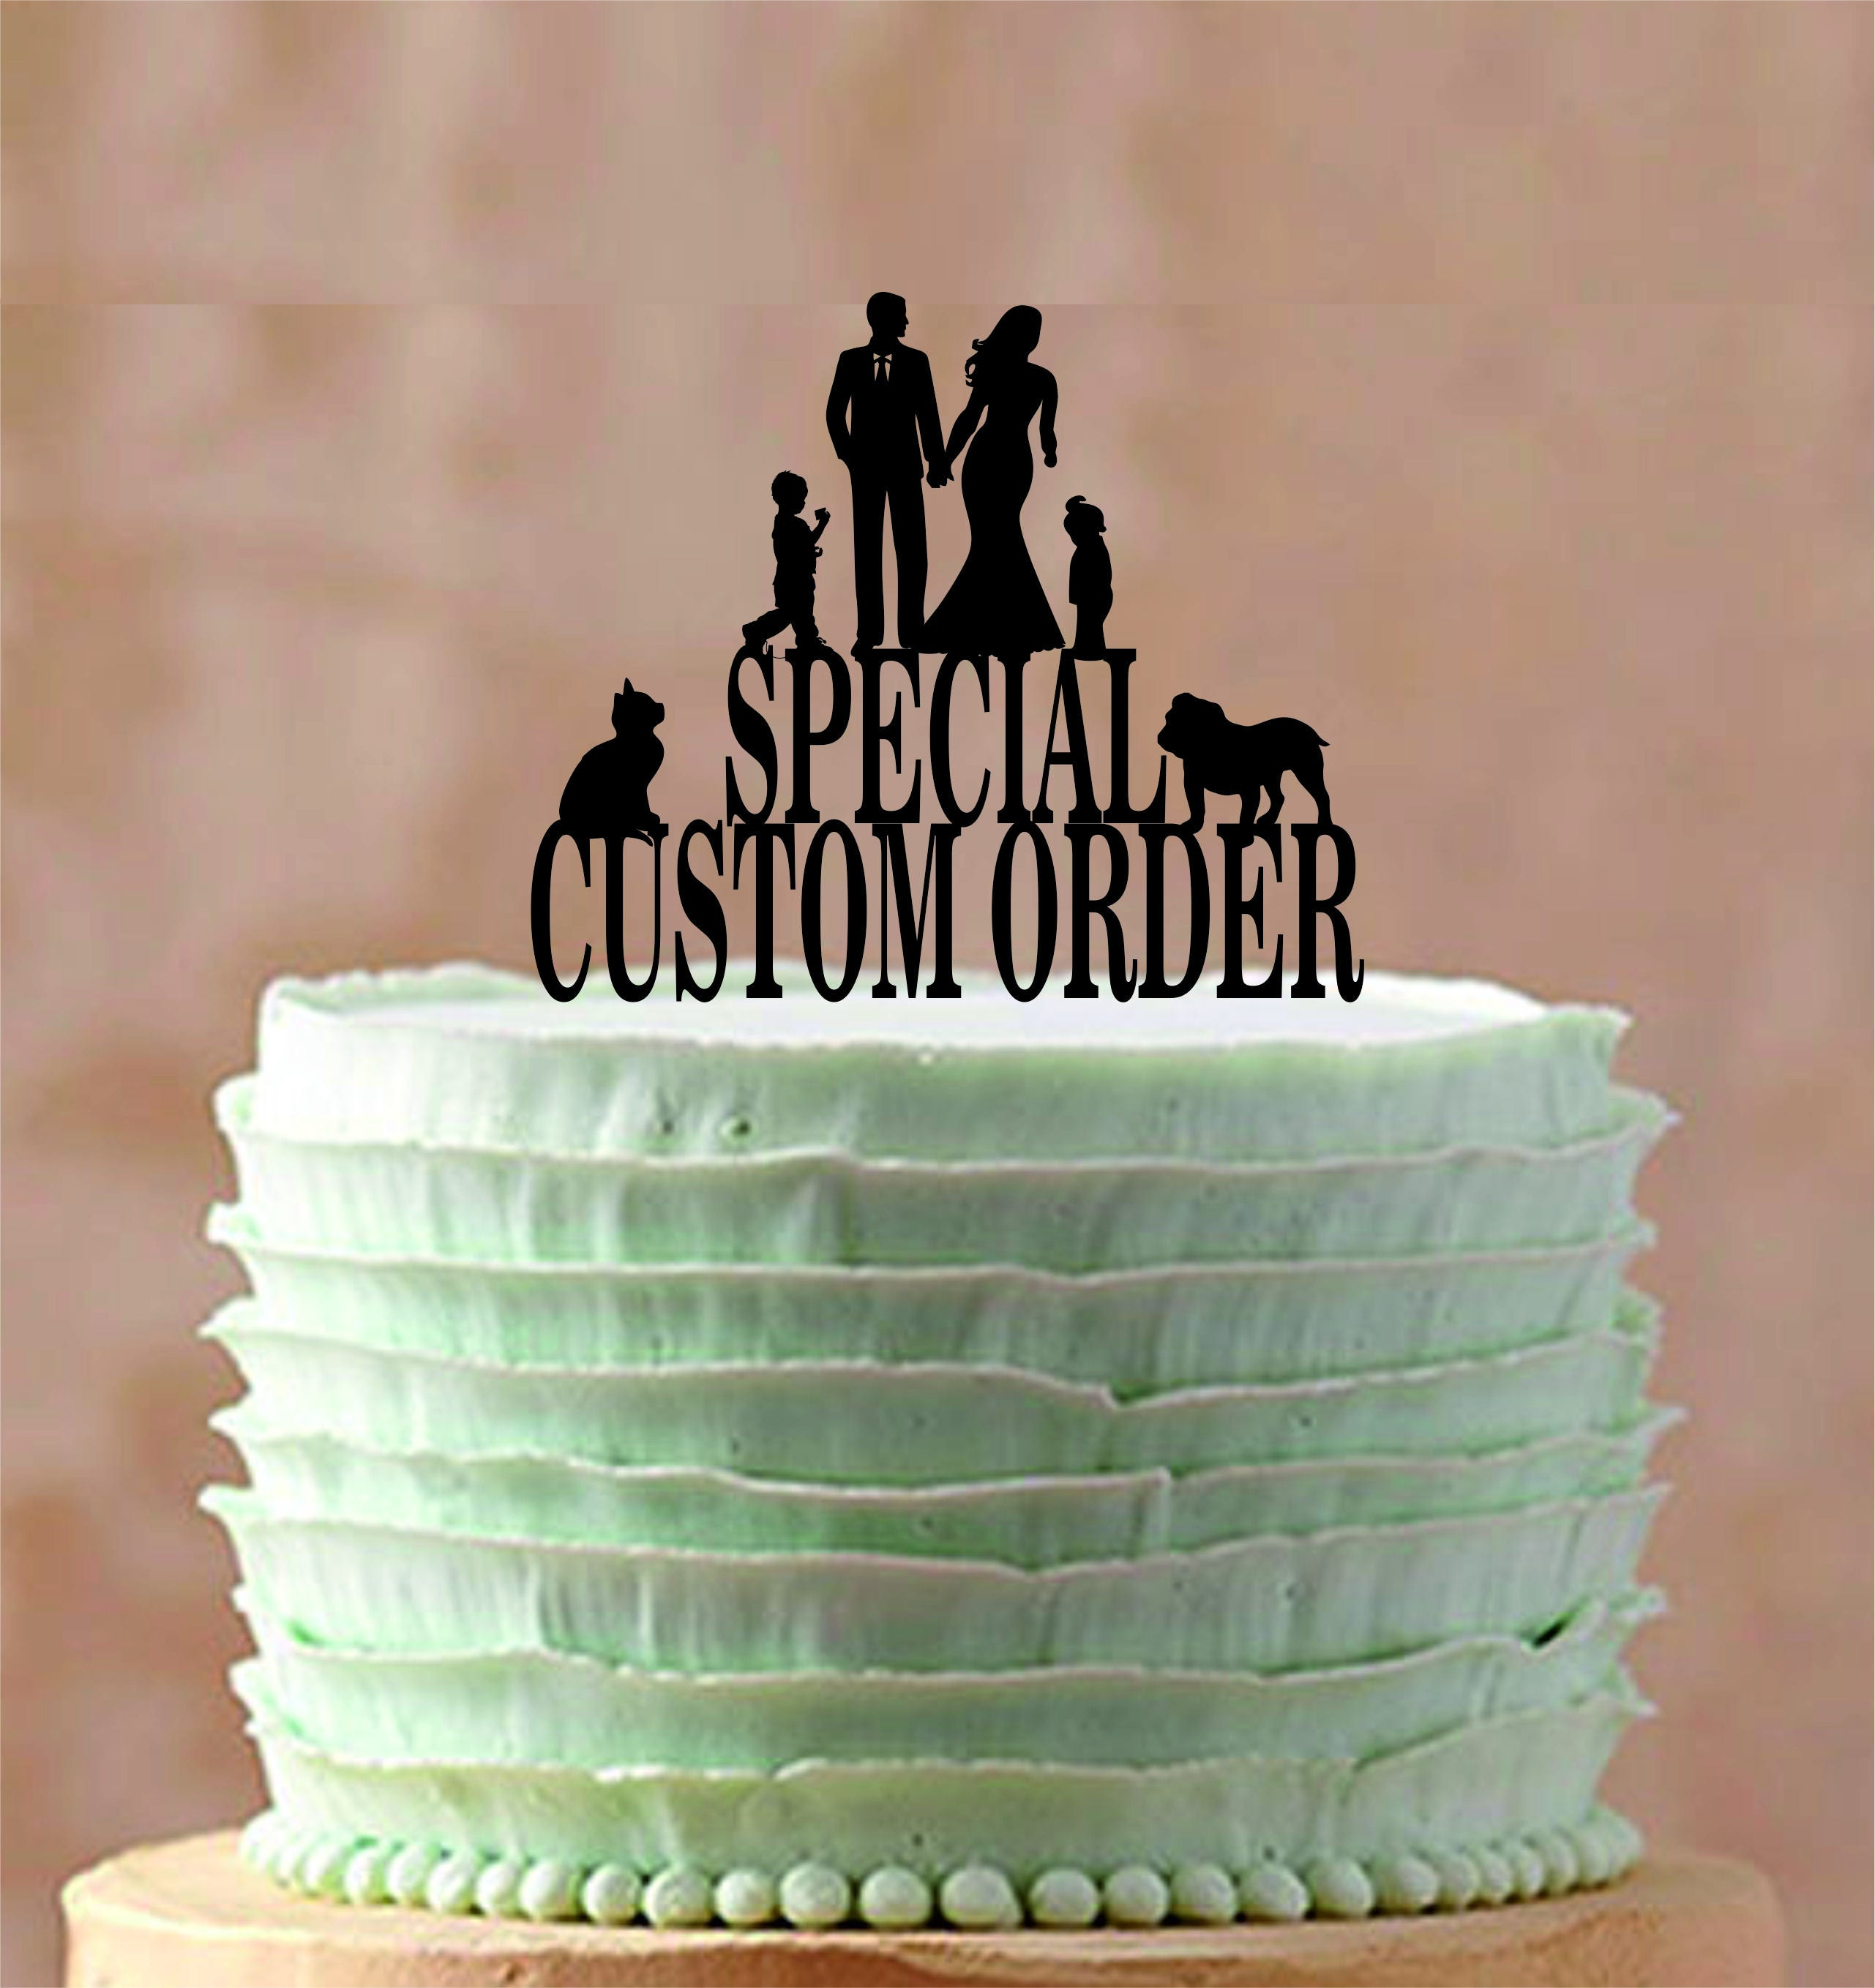 when should order wedding cake special custom order wedding cake topper 27116